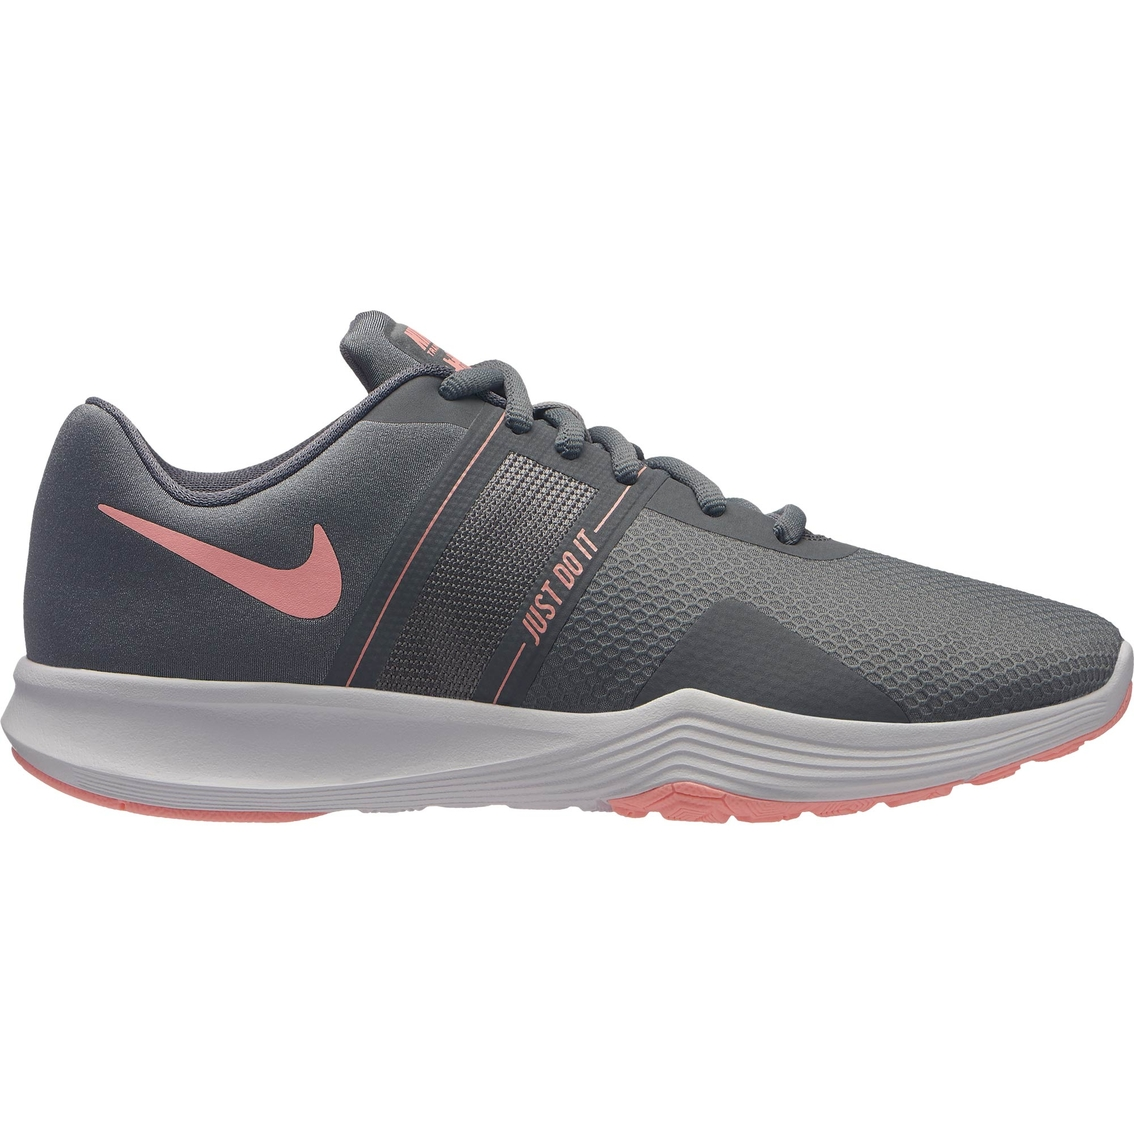 City Trainer 2 Training Shoes